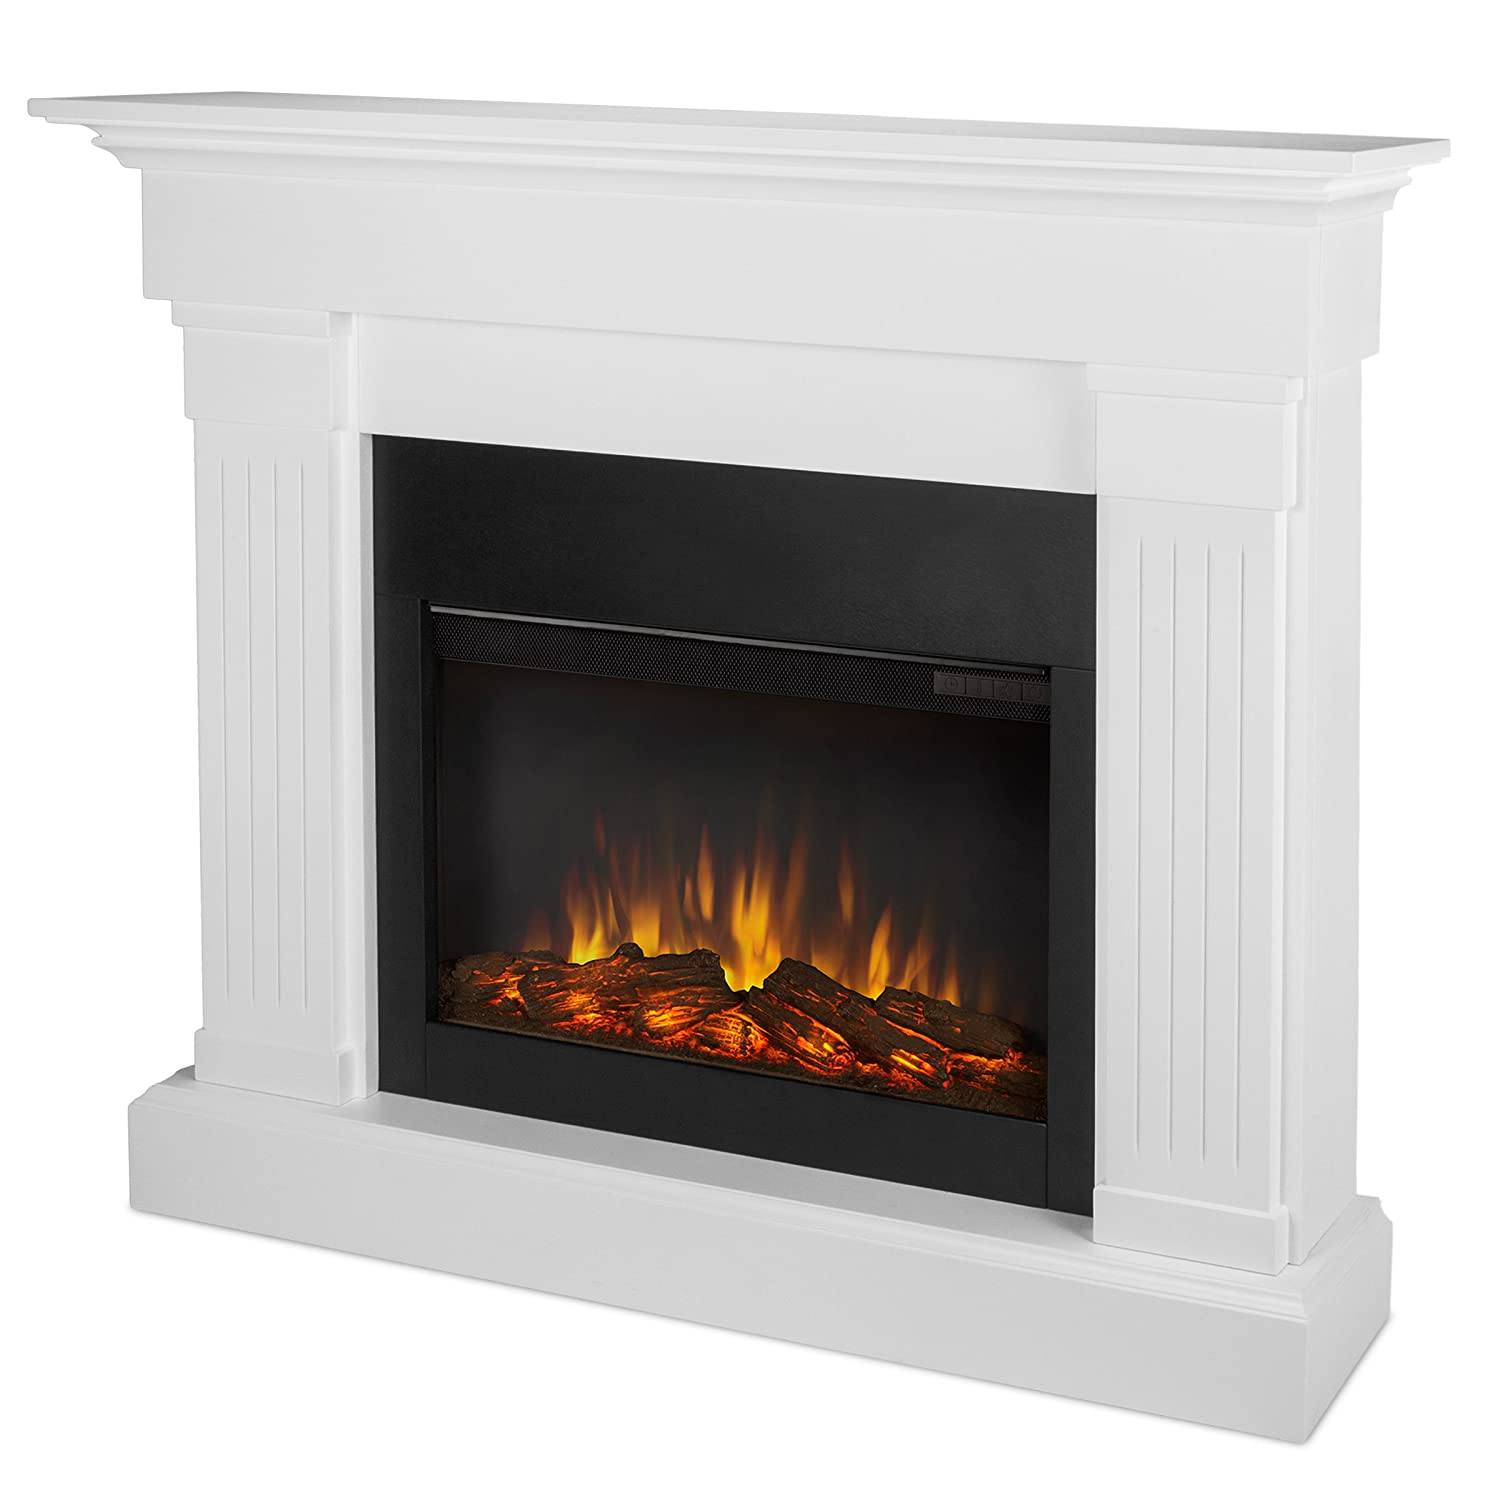 Amazon.com: Real Flame 8020E-W Crawford Electric Fireplace, White: Home &  Kitchen